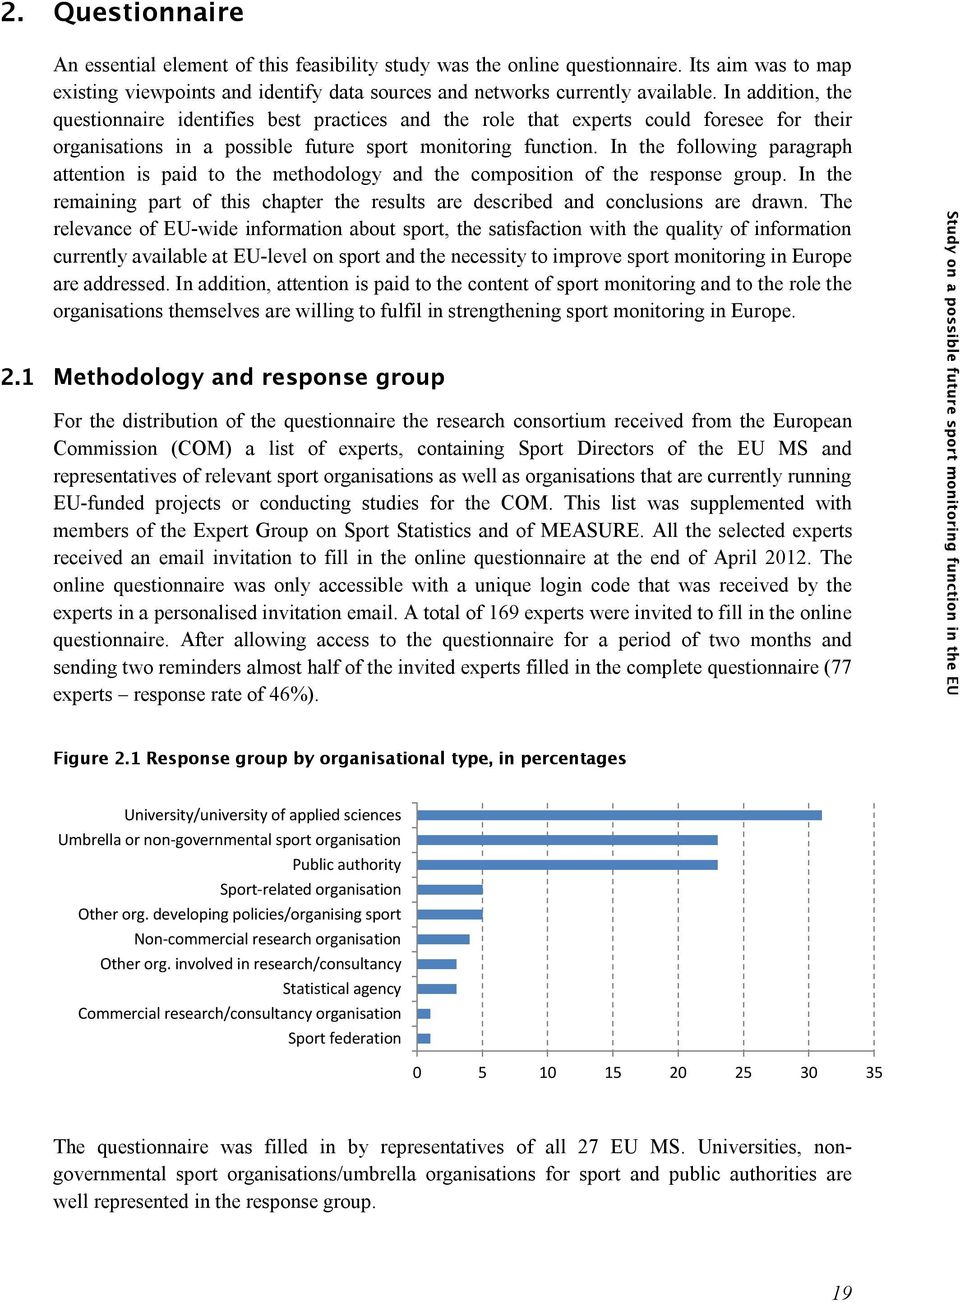 In the following paragraph attention is paid to the methodology and the composition of the response group. In the remaining part of this chapter the results are described and conclusions are drawn.